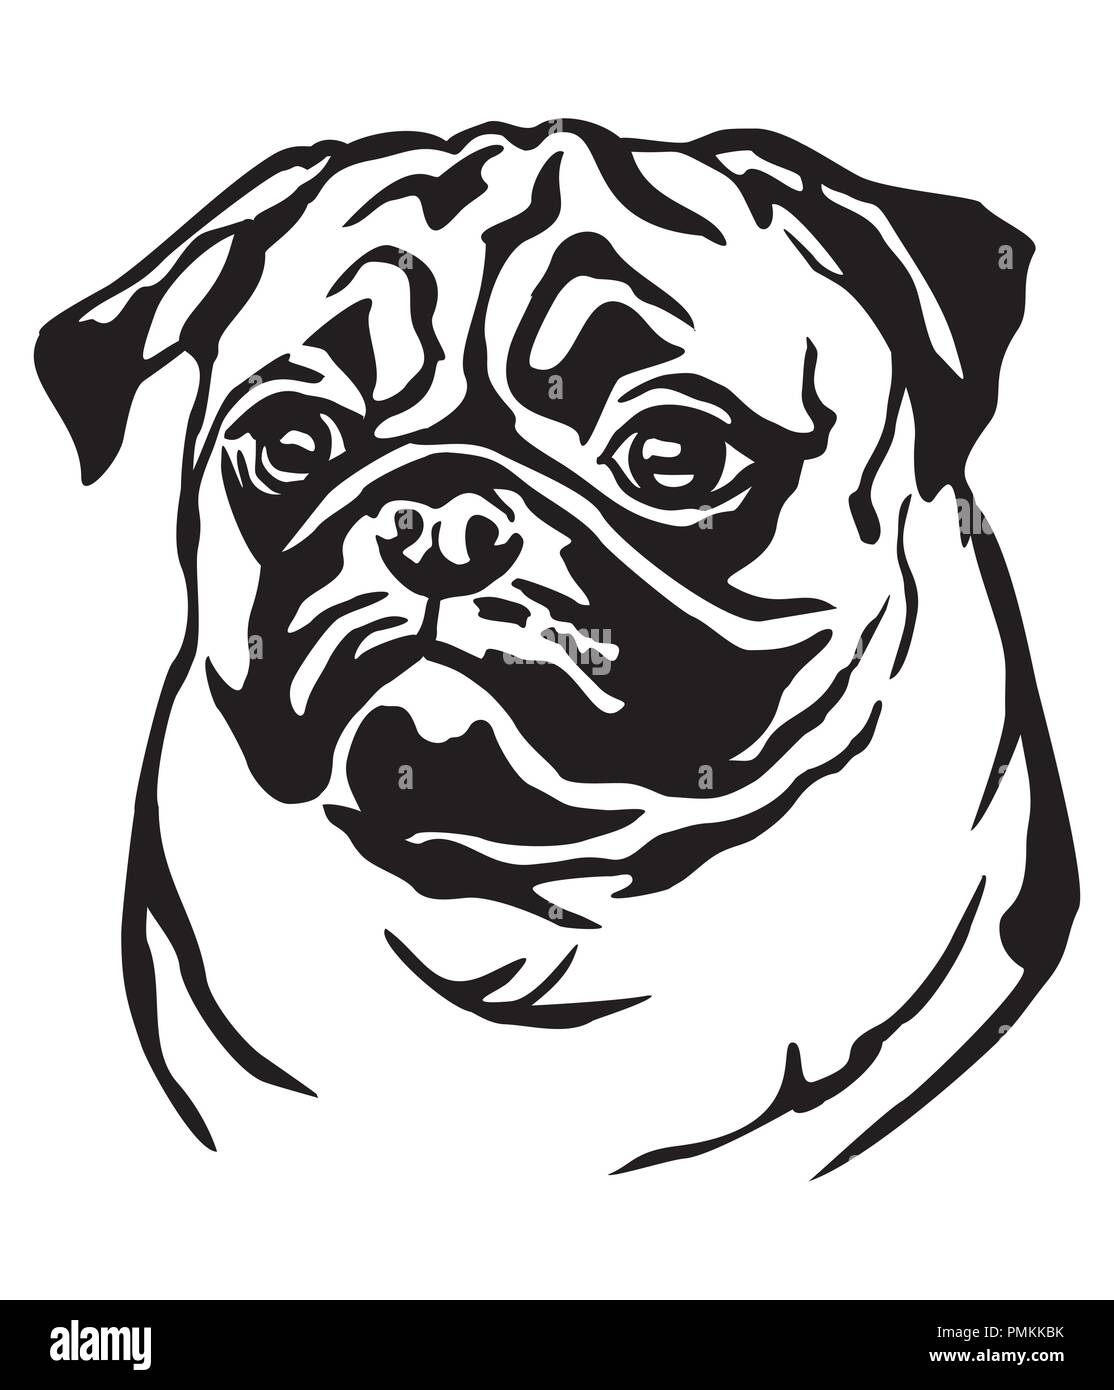 aac99d8e7586 Decorative portrait of dog Pug, vector isolated illustration in black color  on white background -